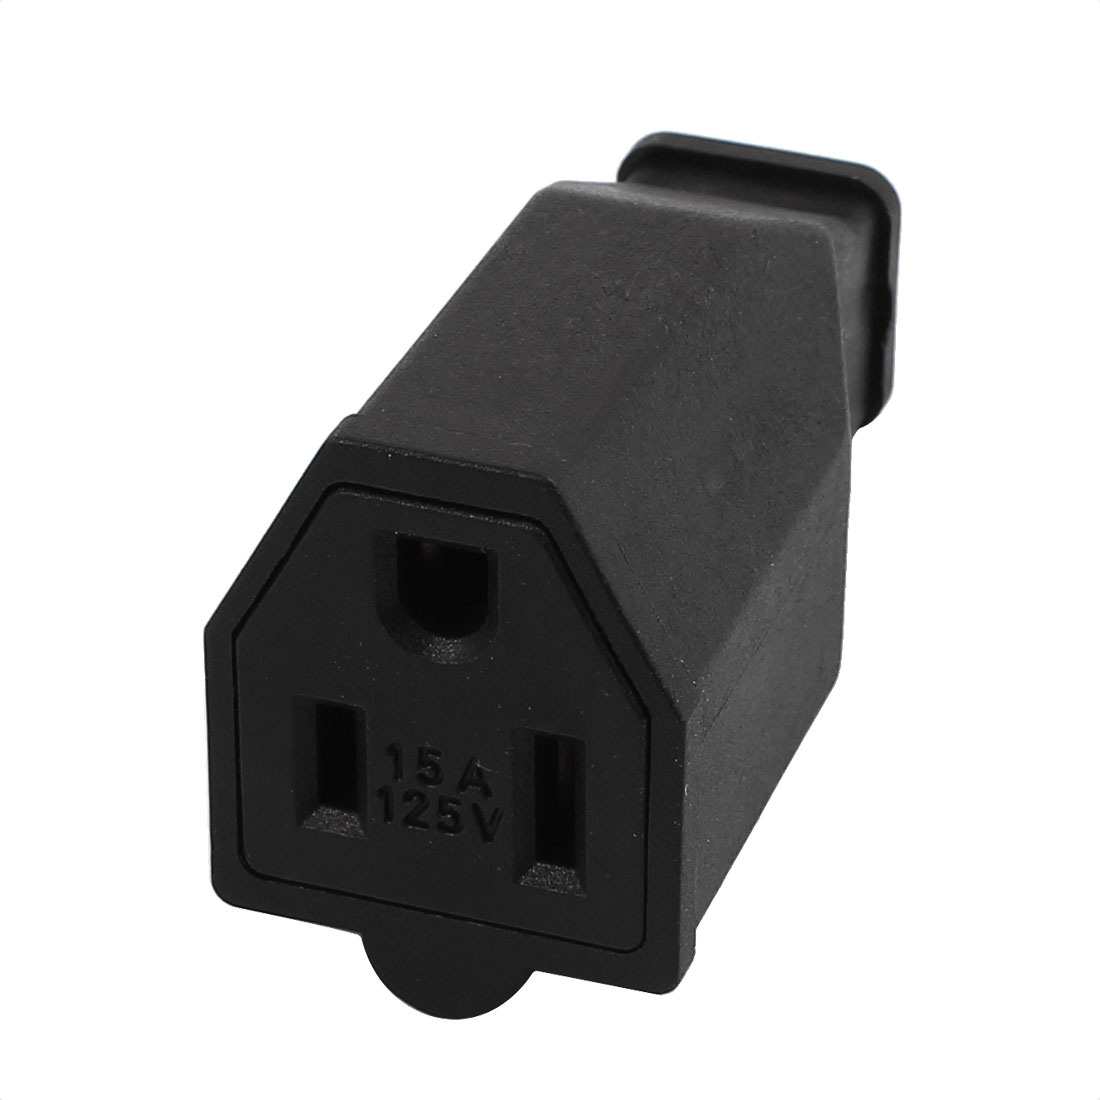 15A 125V AC US Socket Receptacle Nema 5 15R Female Connector Black SS-159